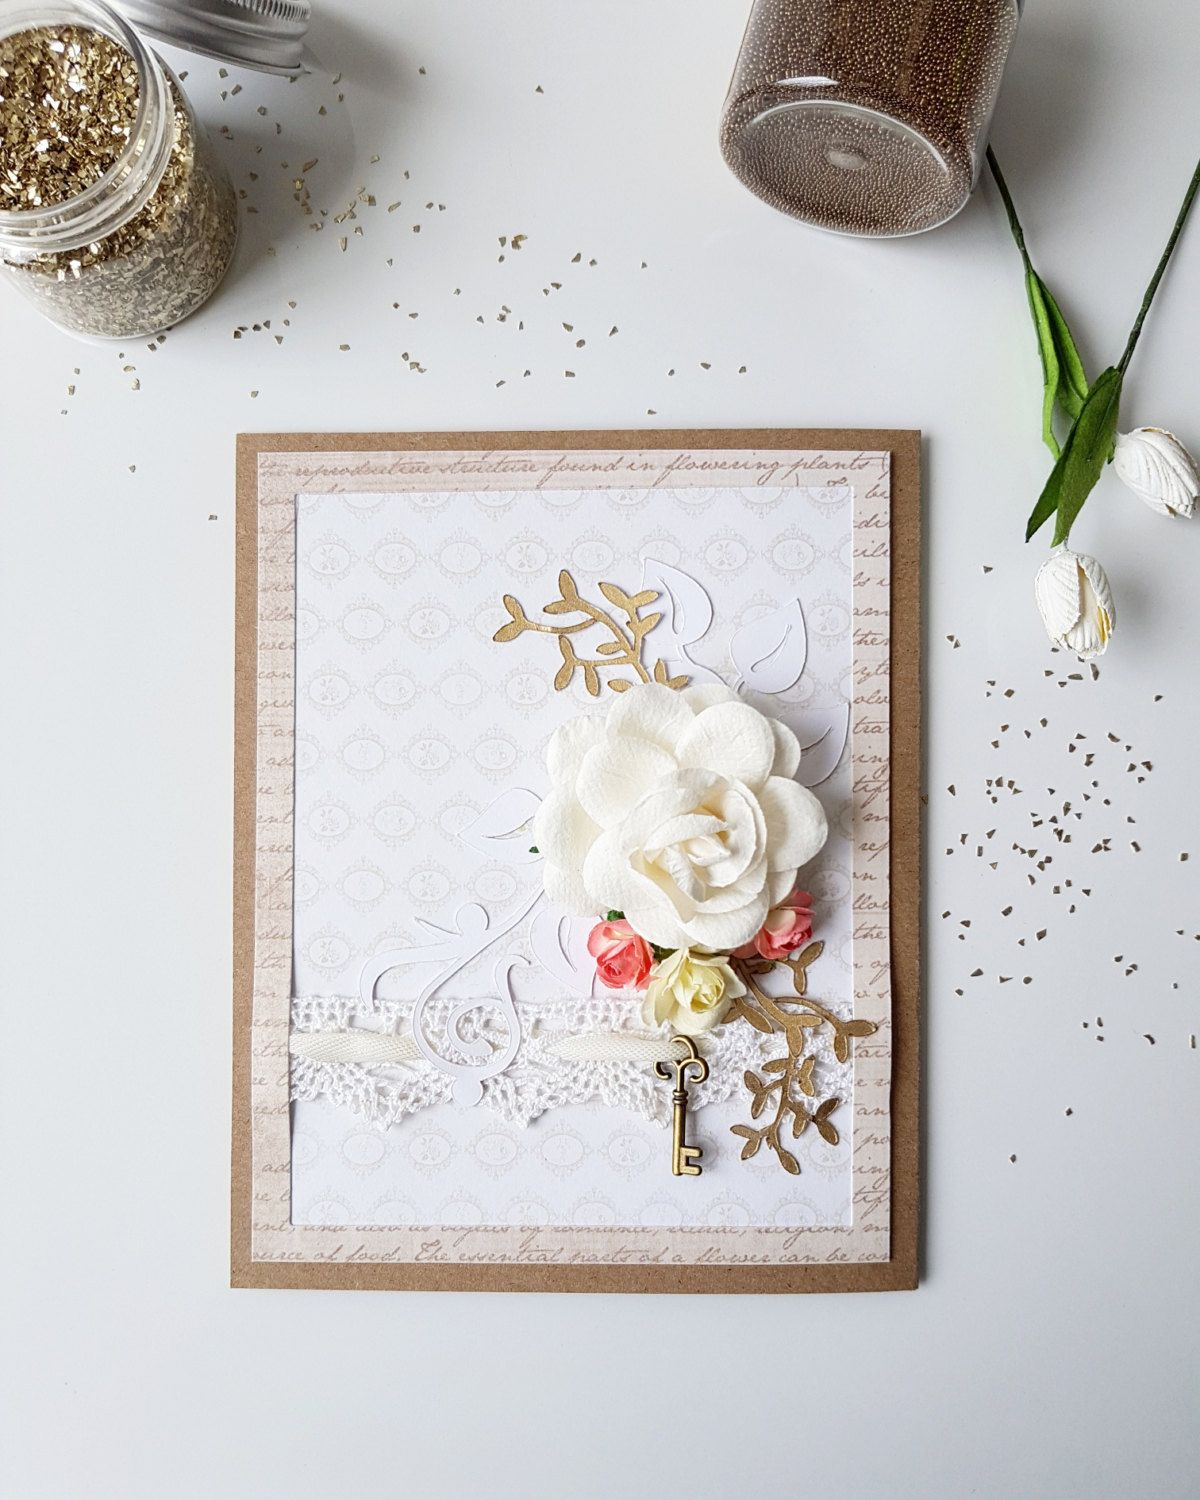 Handmade Greeting Card Gift For Mom Paper Flowers Girlfriend Shabby Chic Romantic Wedding Personal Cards